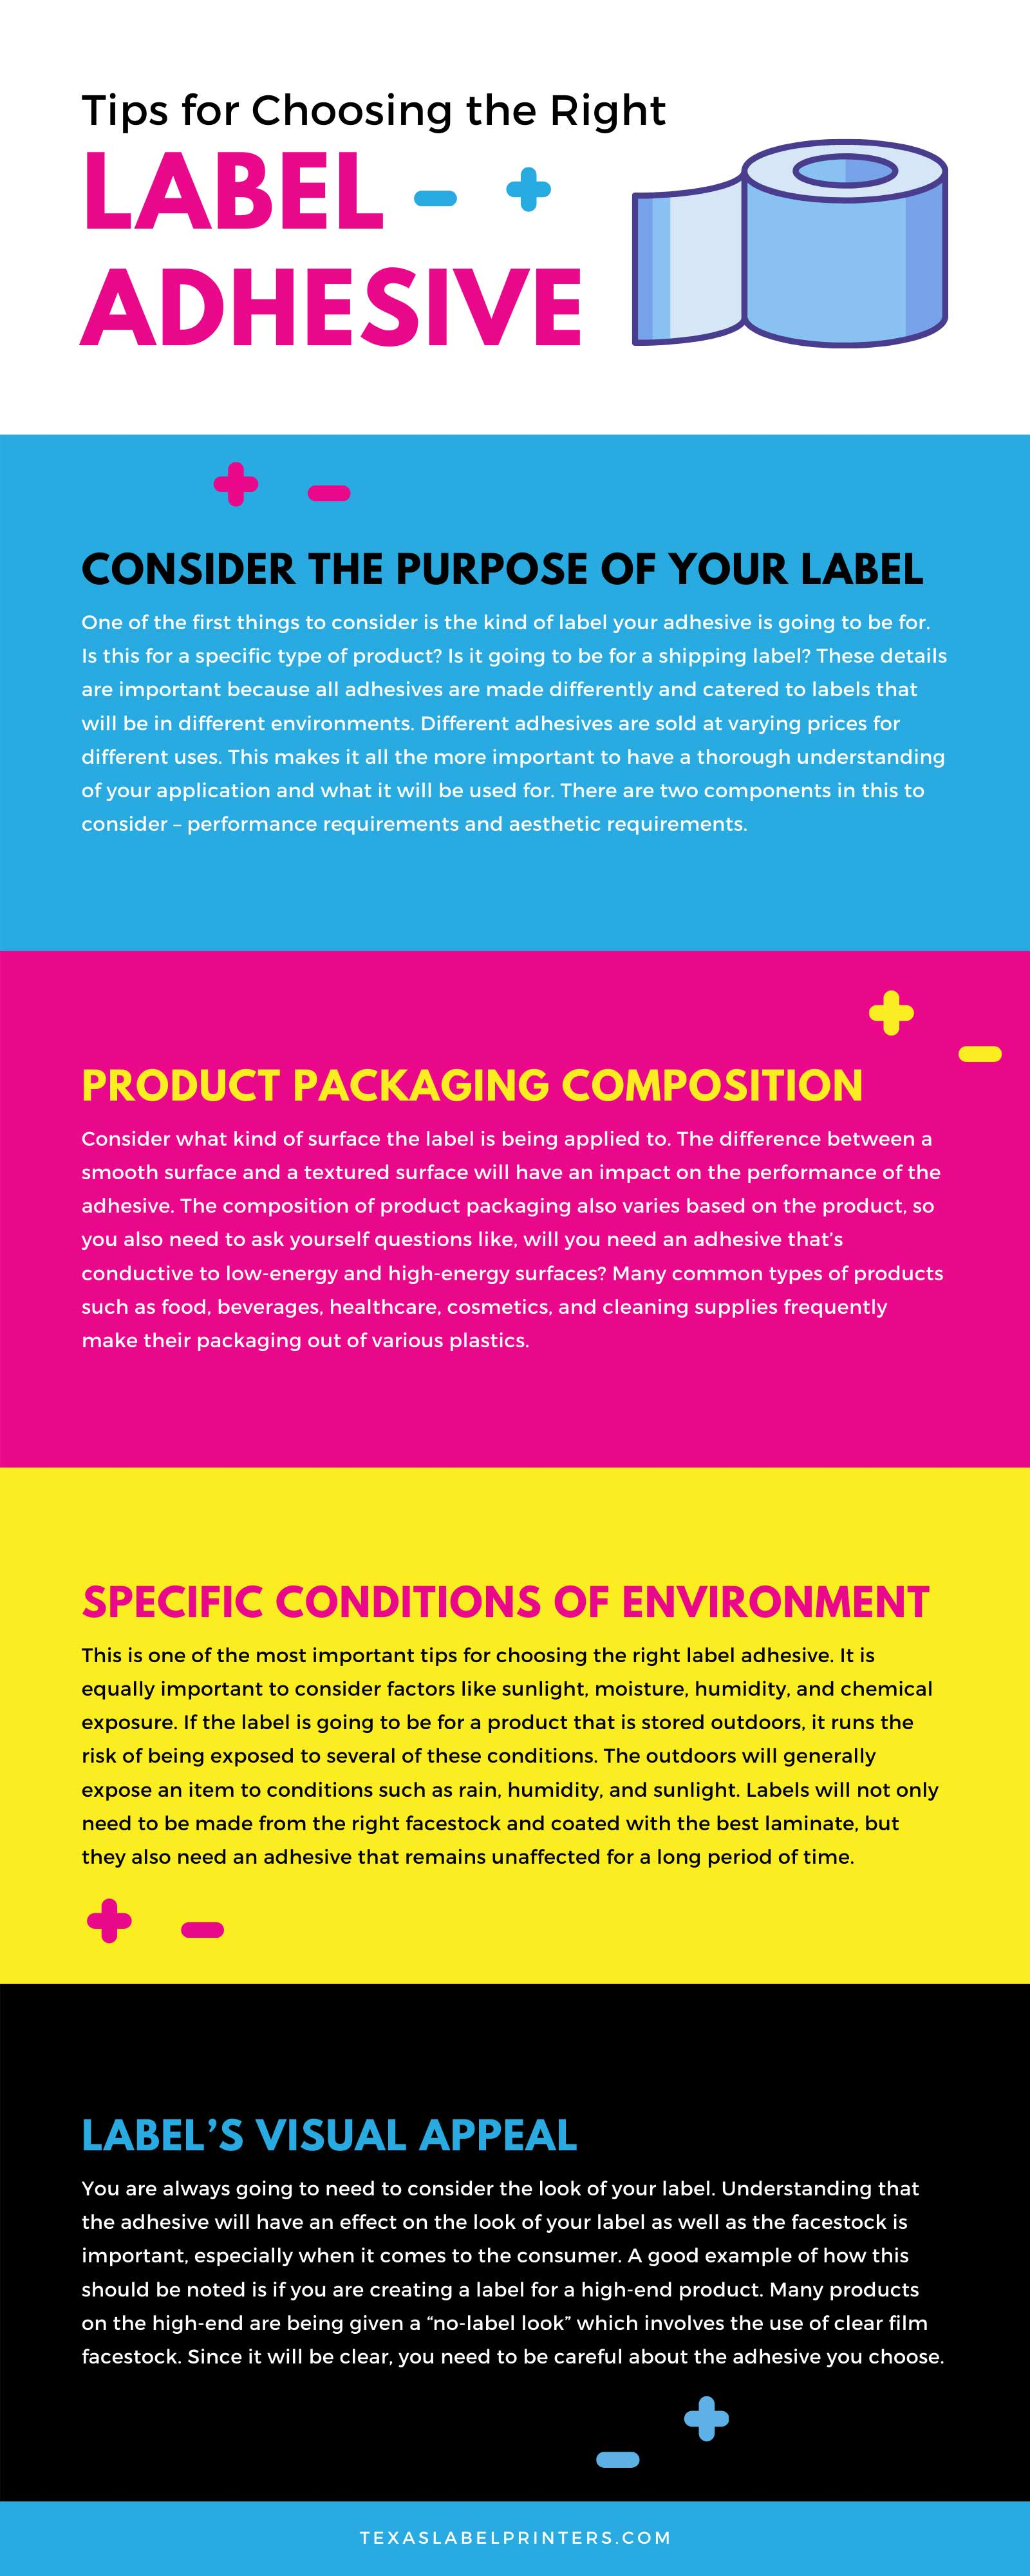 Tips for Choosing the Right Label Adhesive Infographic